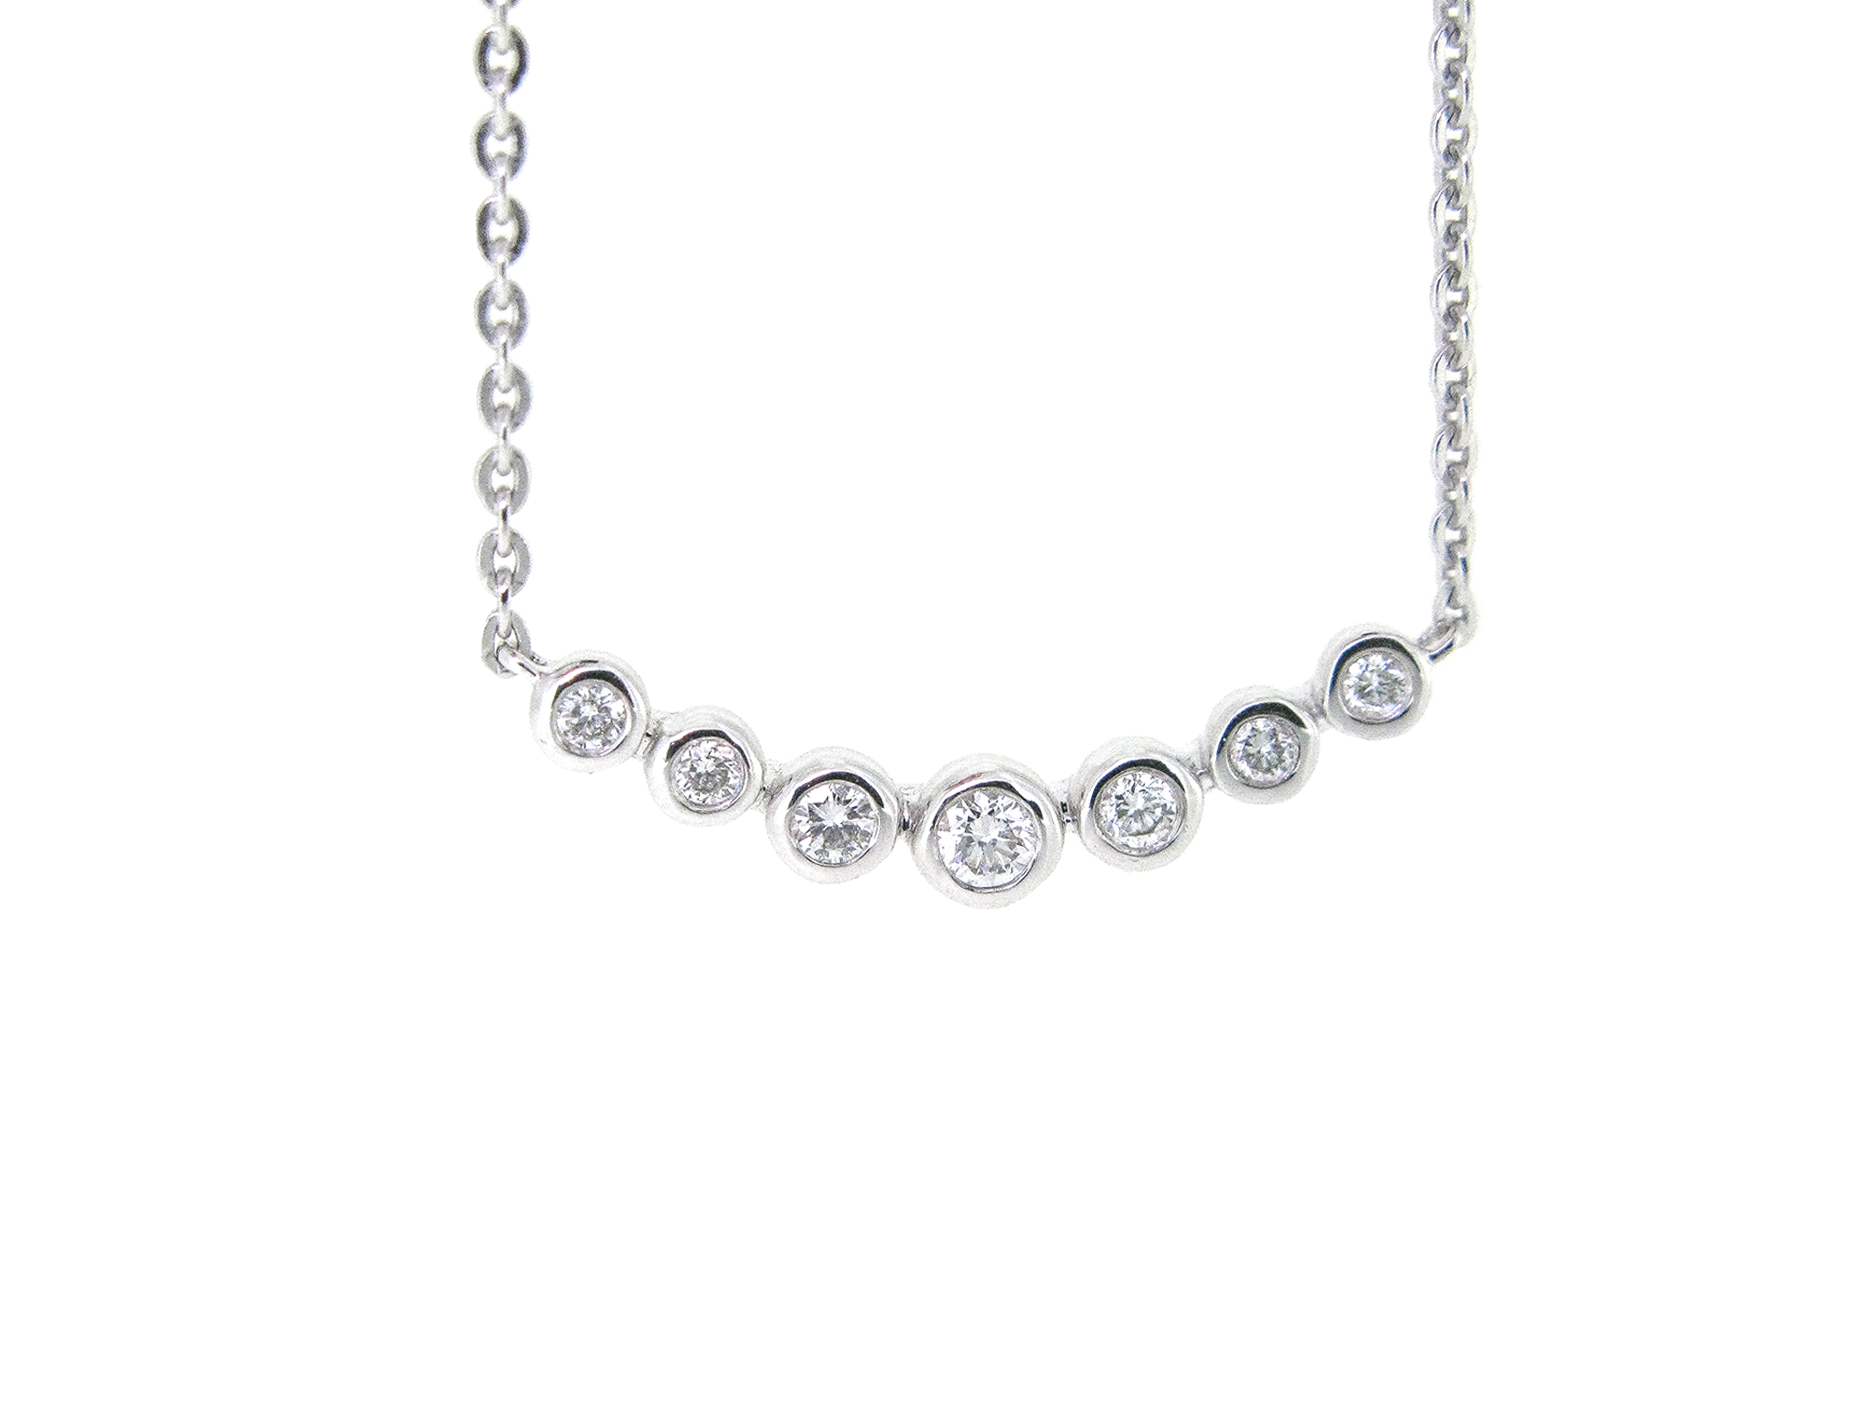 designer style necklace earrings s bezel set and eve sterling addiction cz silver